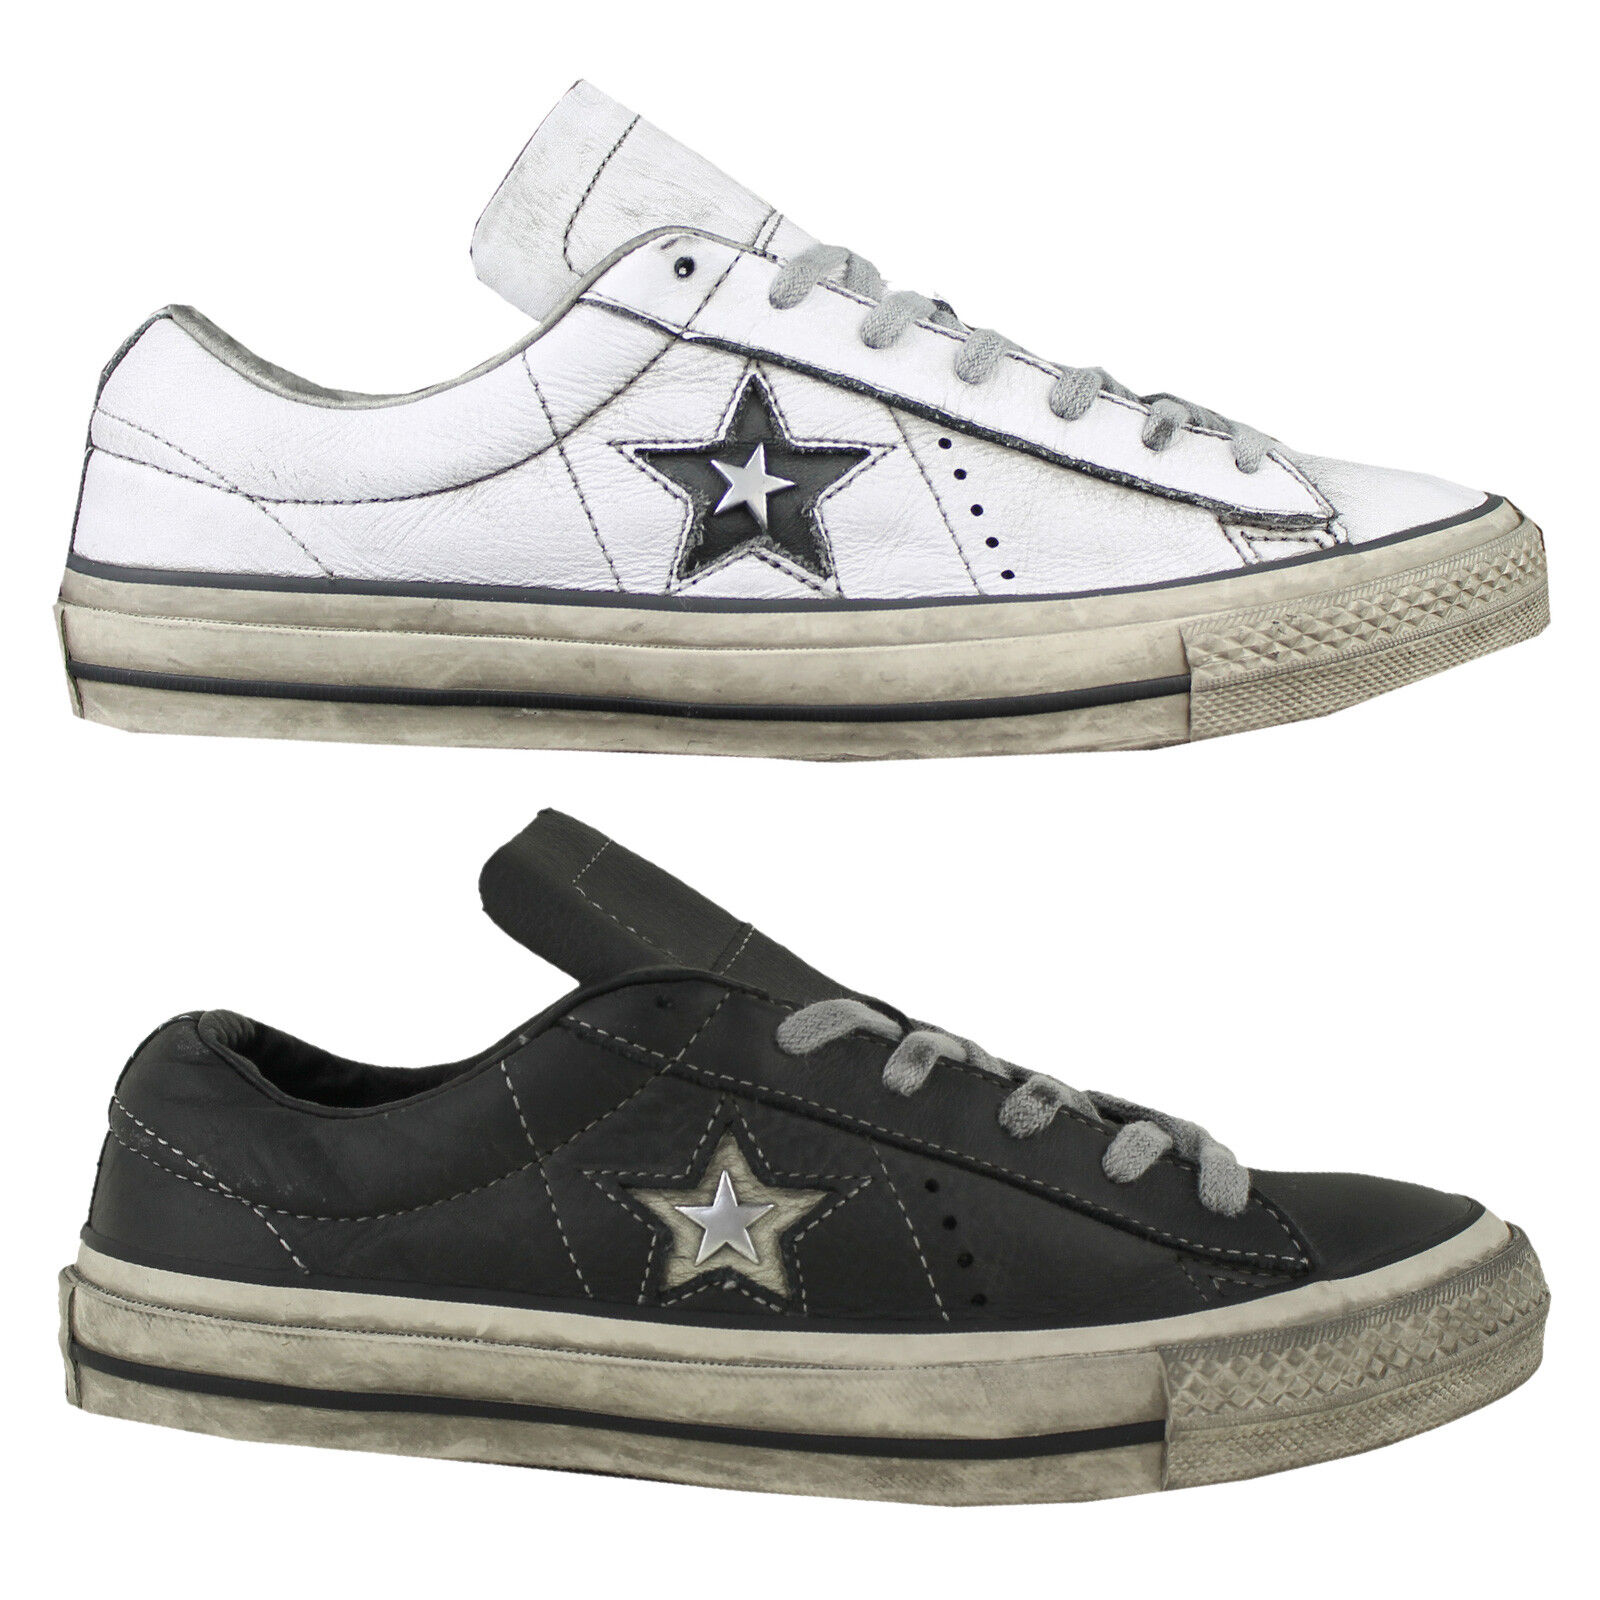 Converse One Ginnastica Star OX Sneaker Donna Scarpe Scarpe Da Ginnastica One Distressed LEATHER NUOVO 35f27c